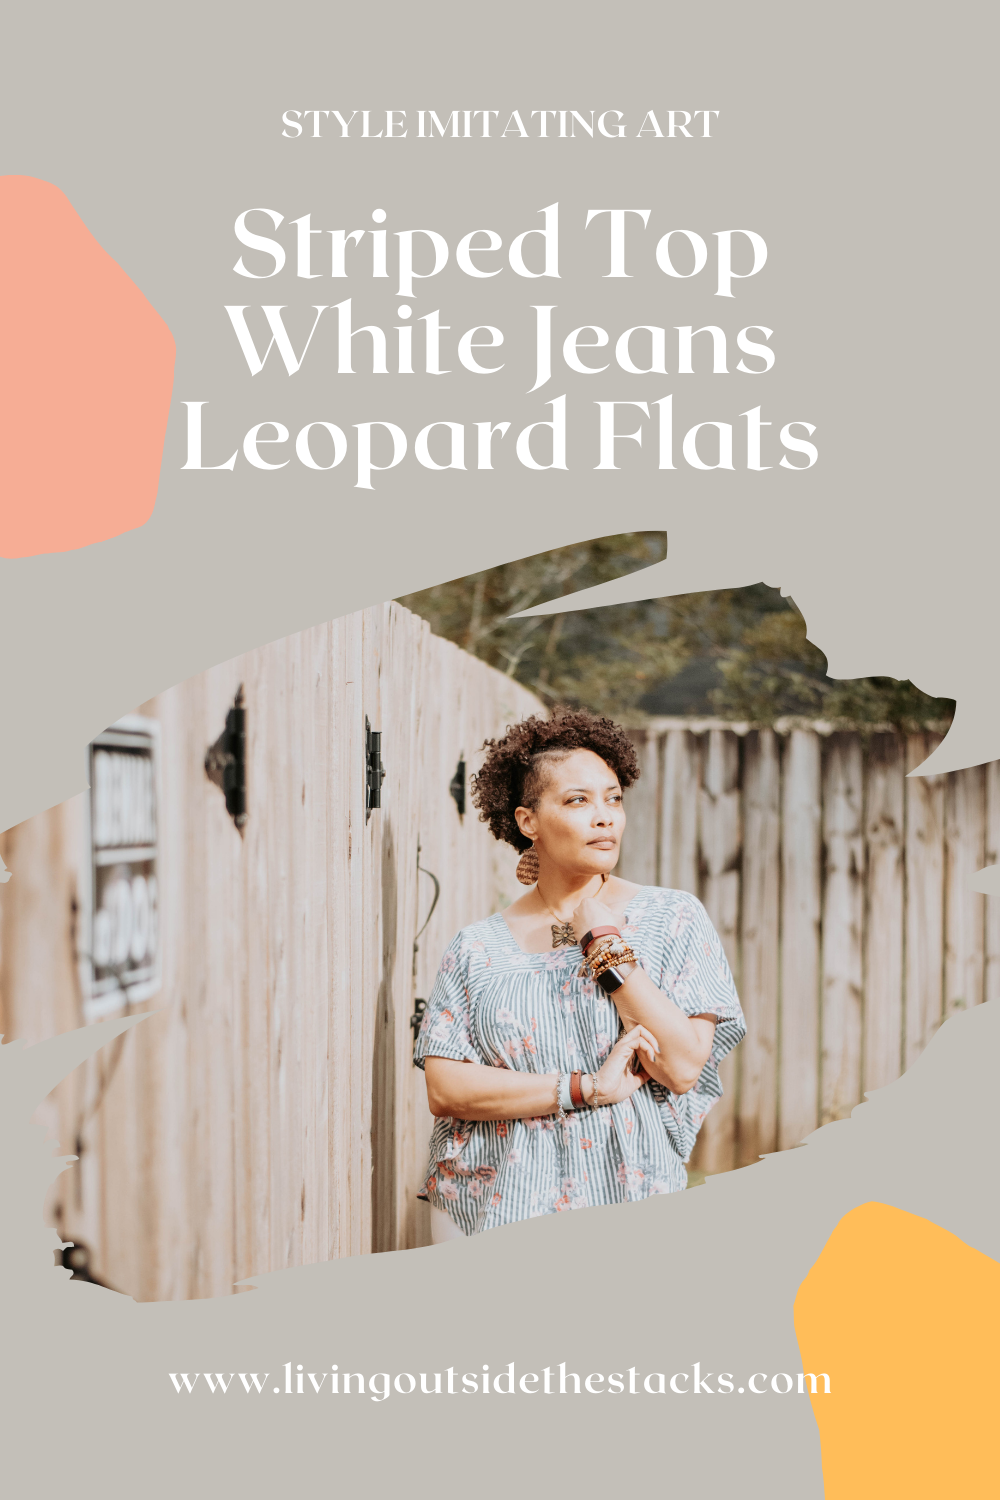 Striped Top White Jeans and Leopard Flats {living outside the stacks} @DaenelT